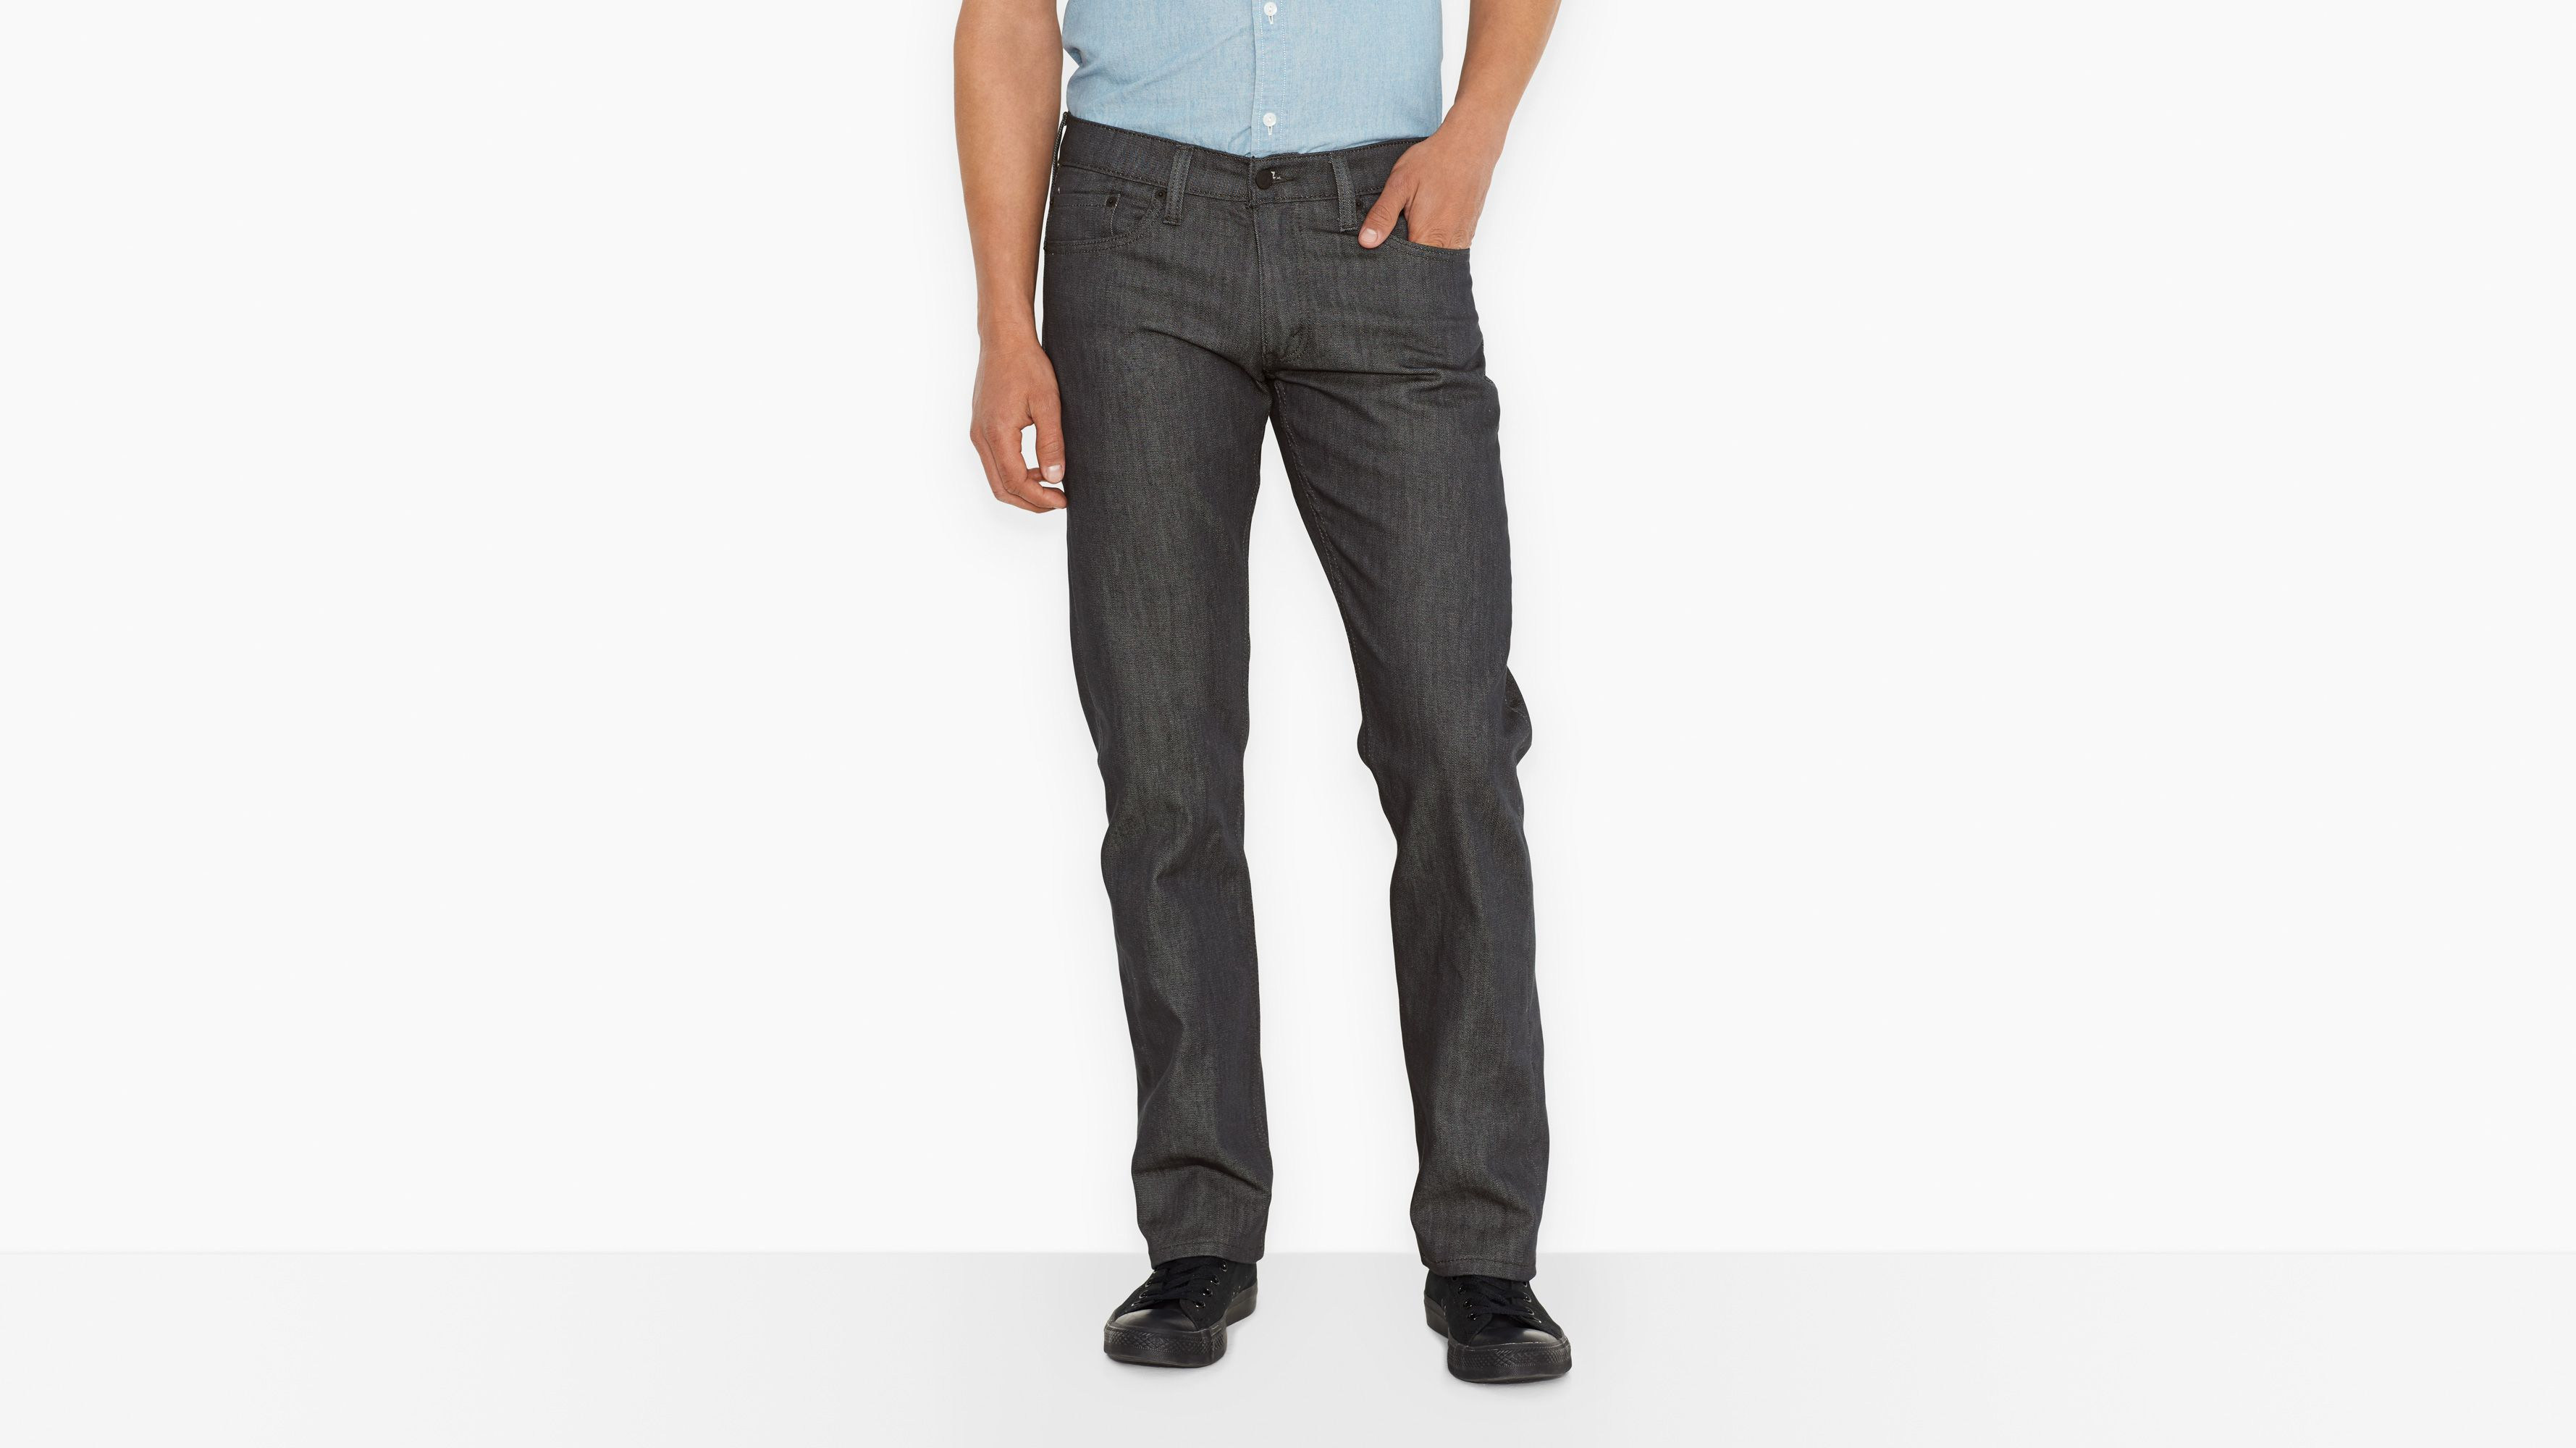 514™ Straight Fit Jeans - Rigid Grey